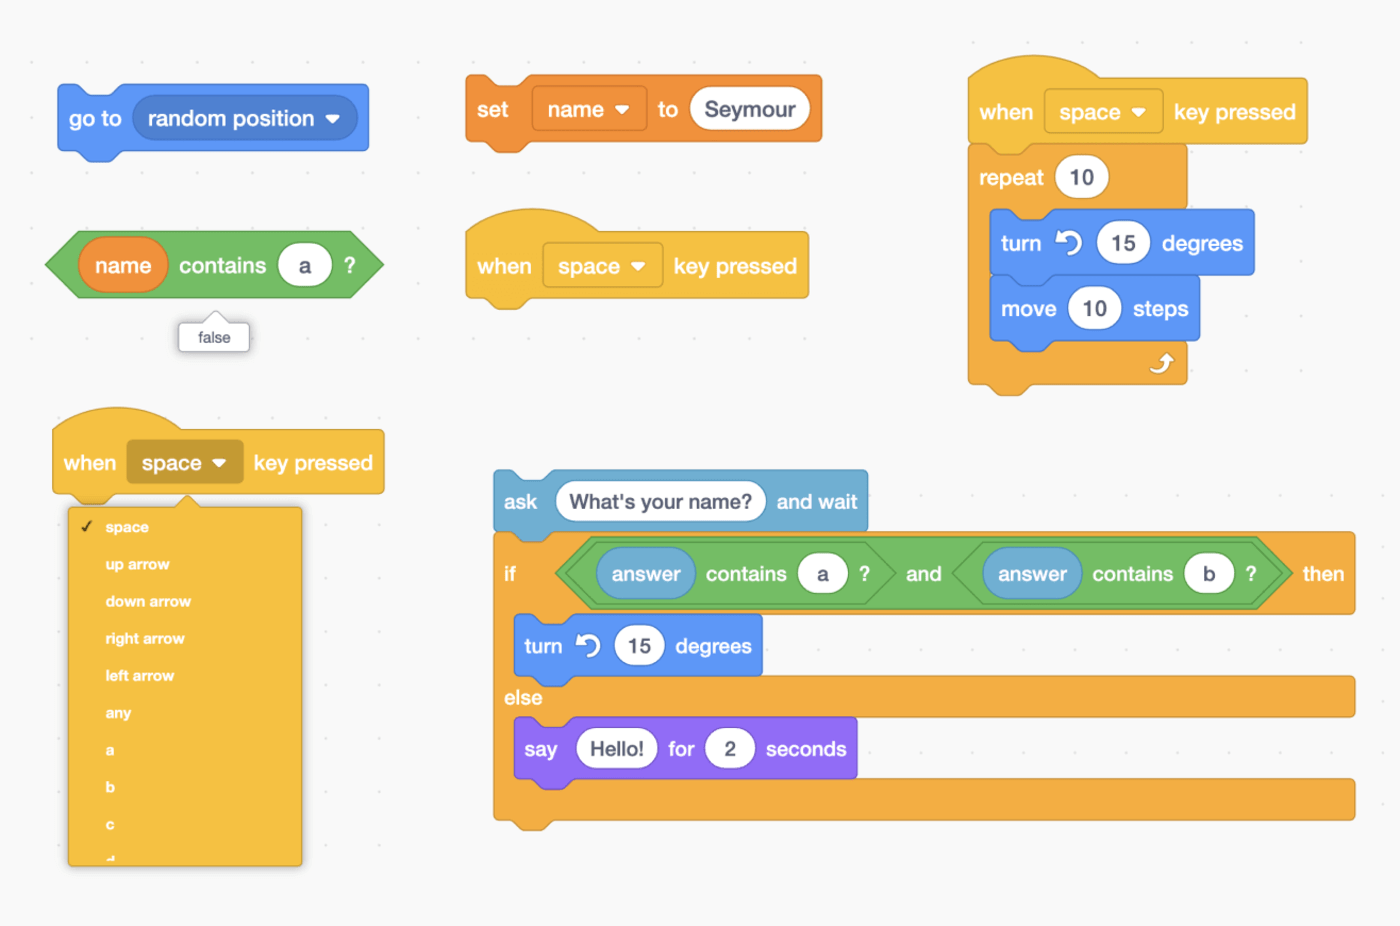 A selection of the avaliable programming commands in Scratch